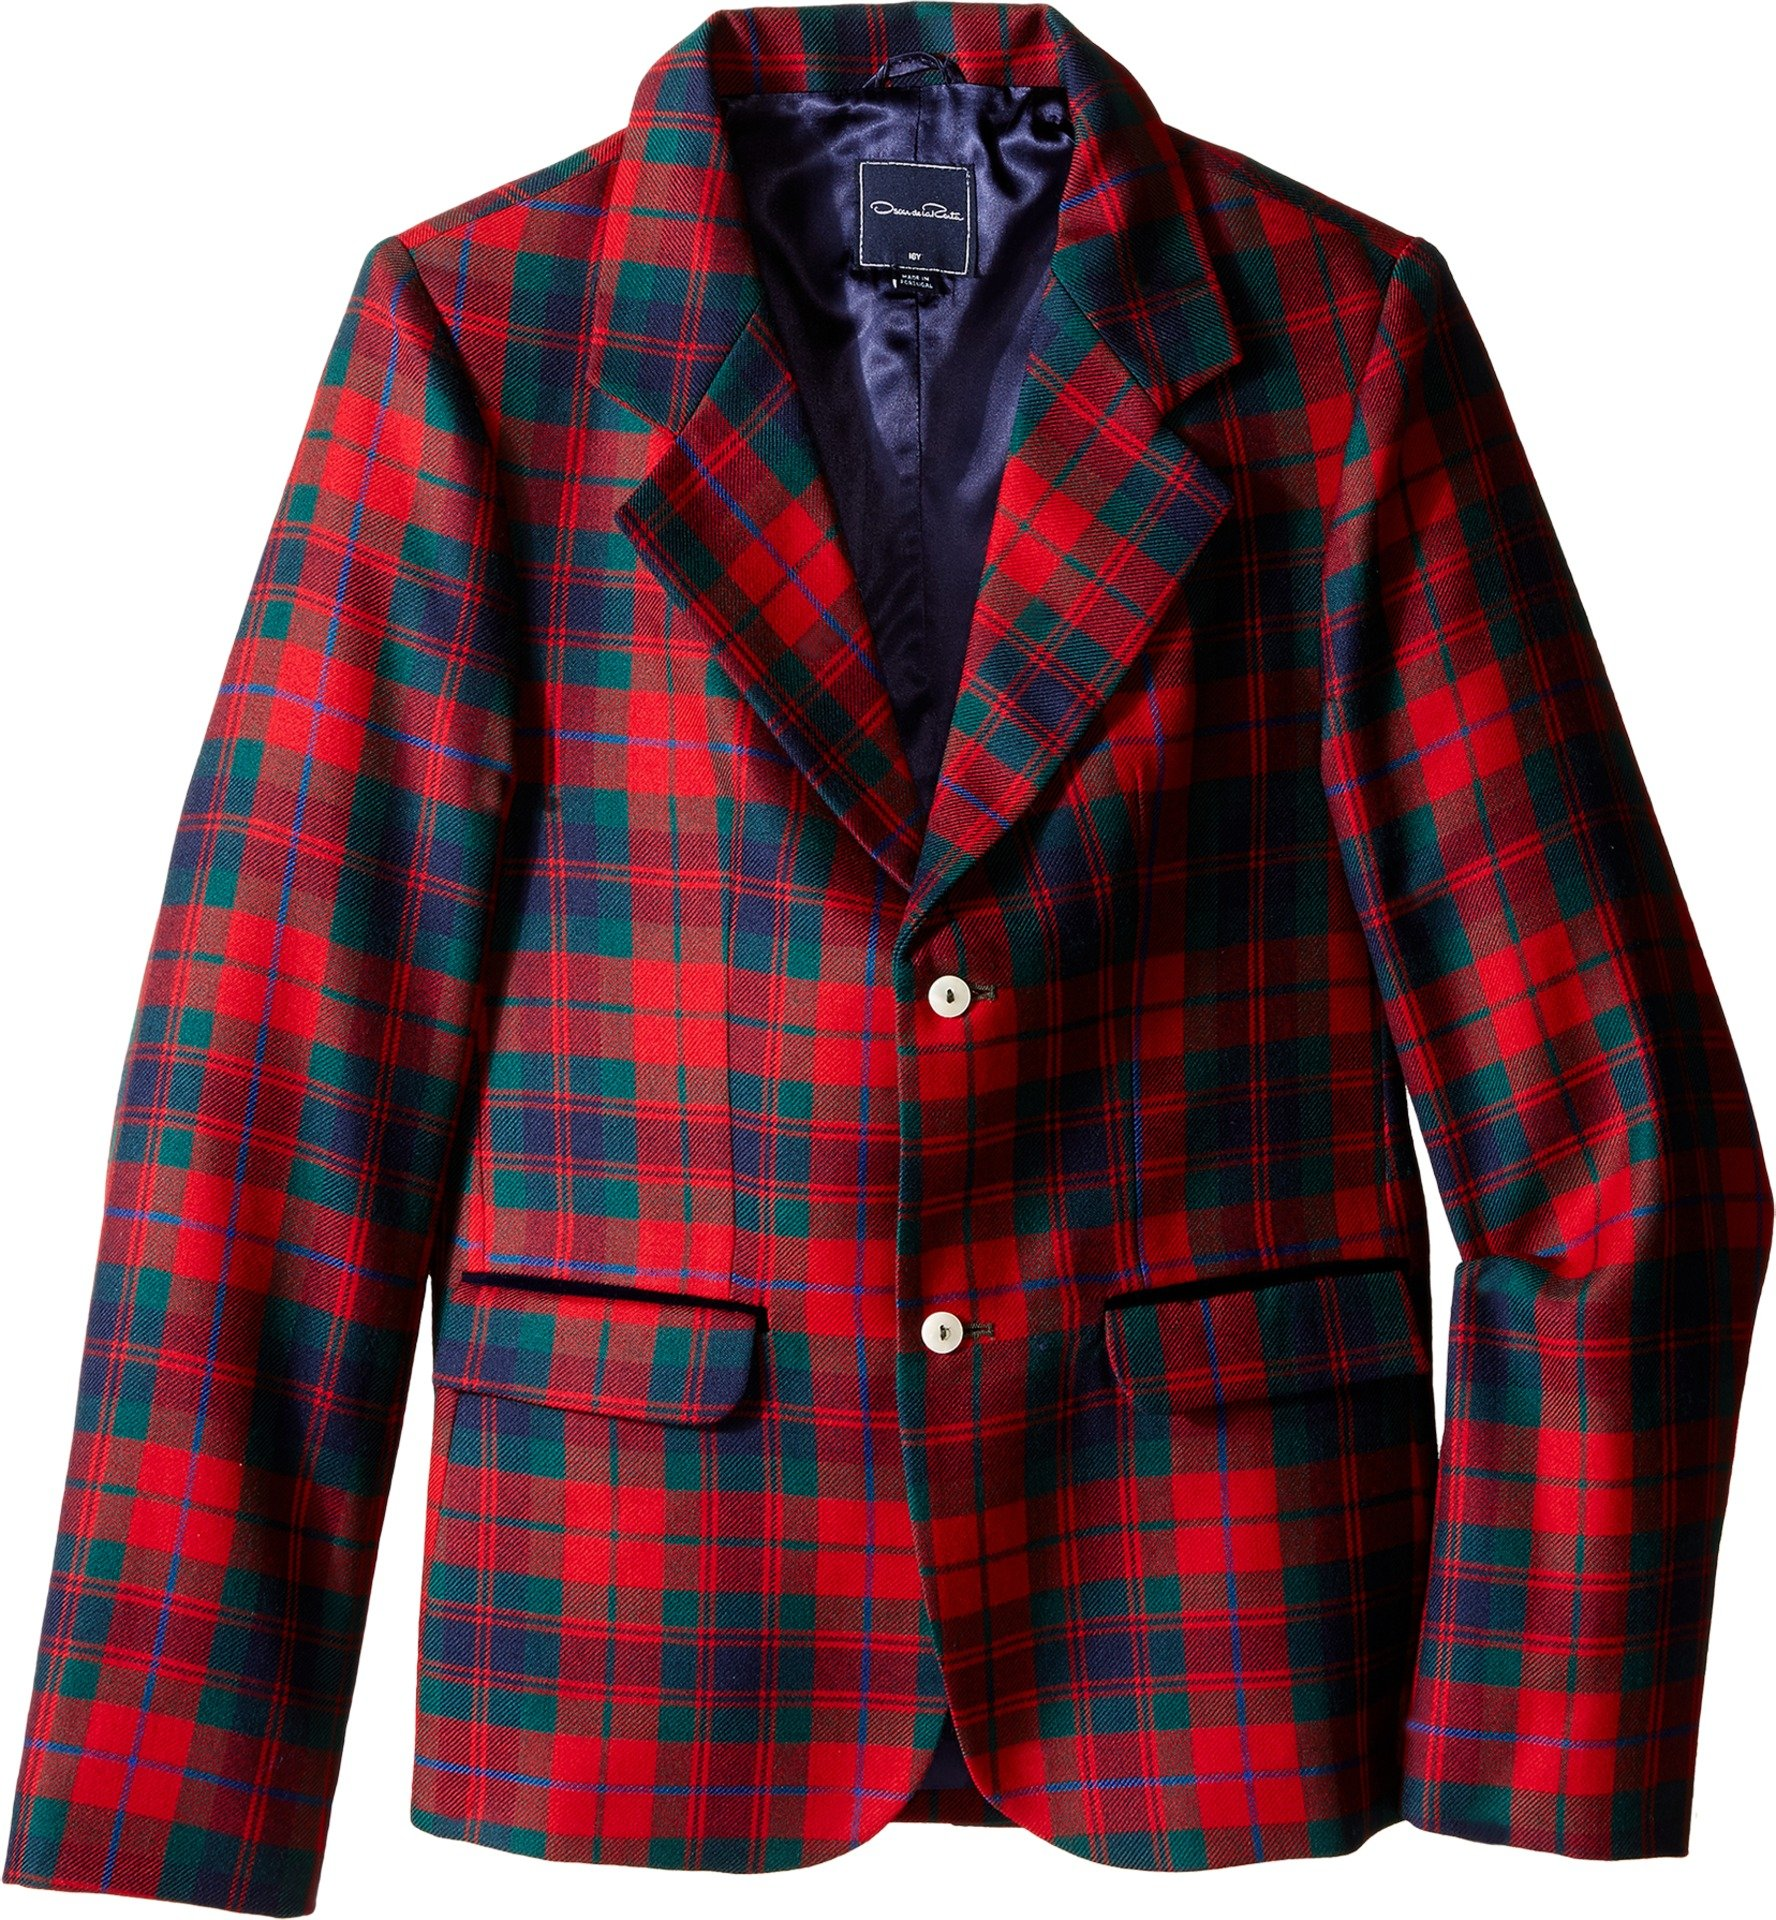 OSCAR DE LA RENTA Childrenswear Boys' Holiday Plaid Wool Blazer (Little Big Kids), Ruby Multi, 2 (Toddler) by OSCAR DE LA RENTA